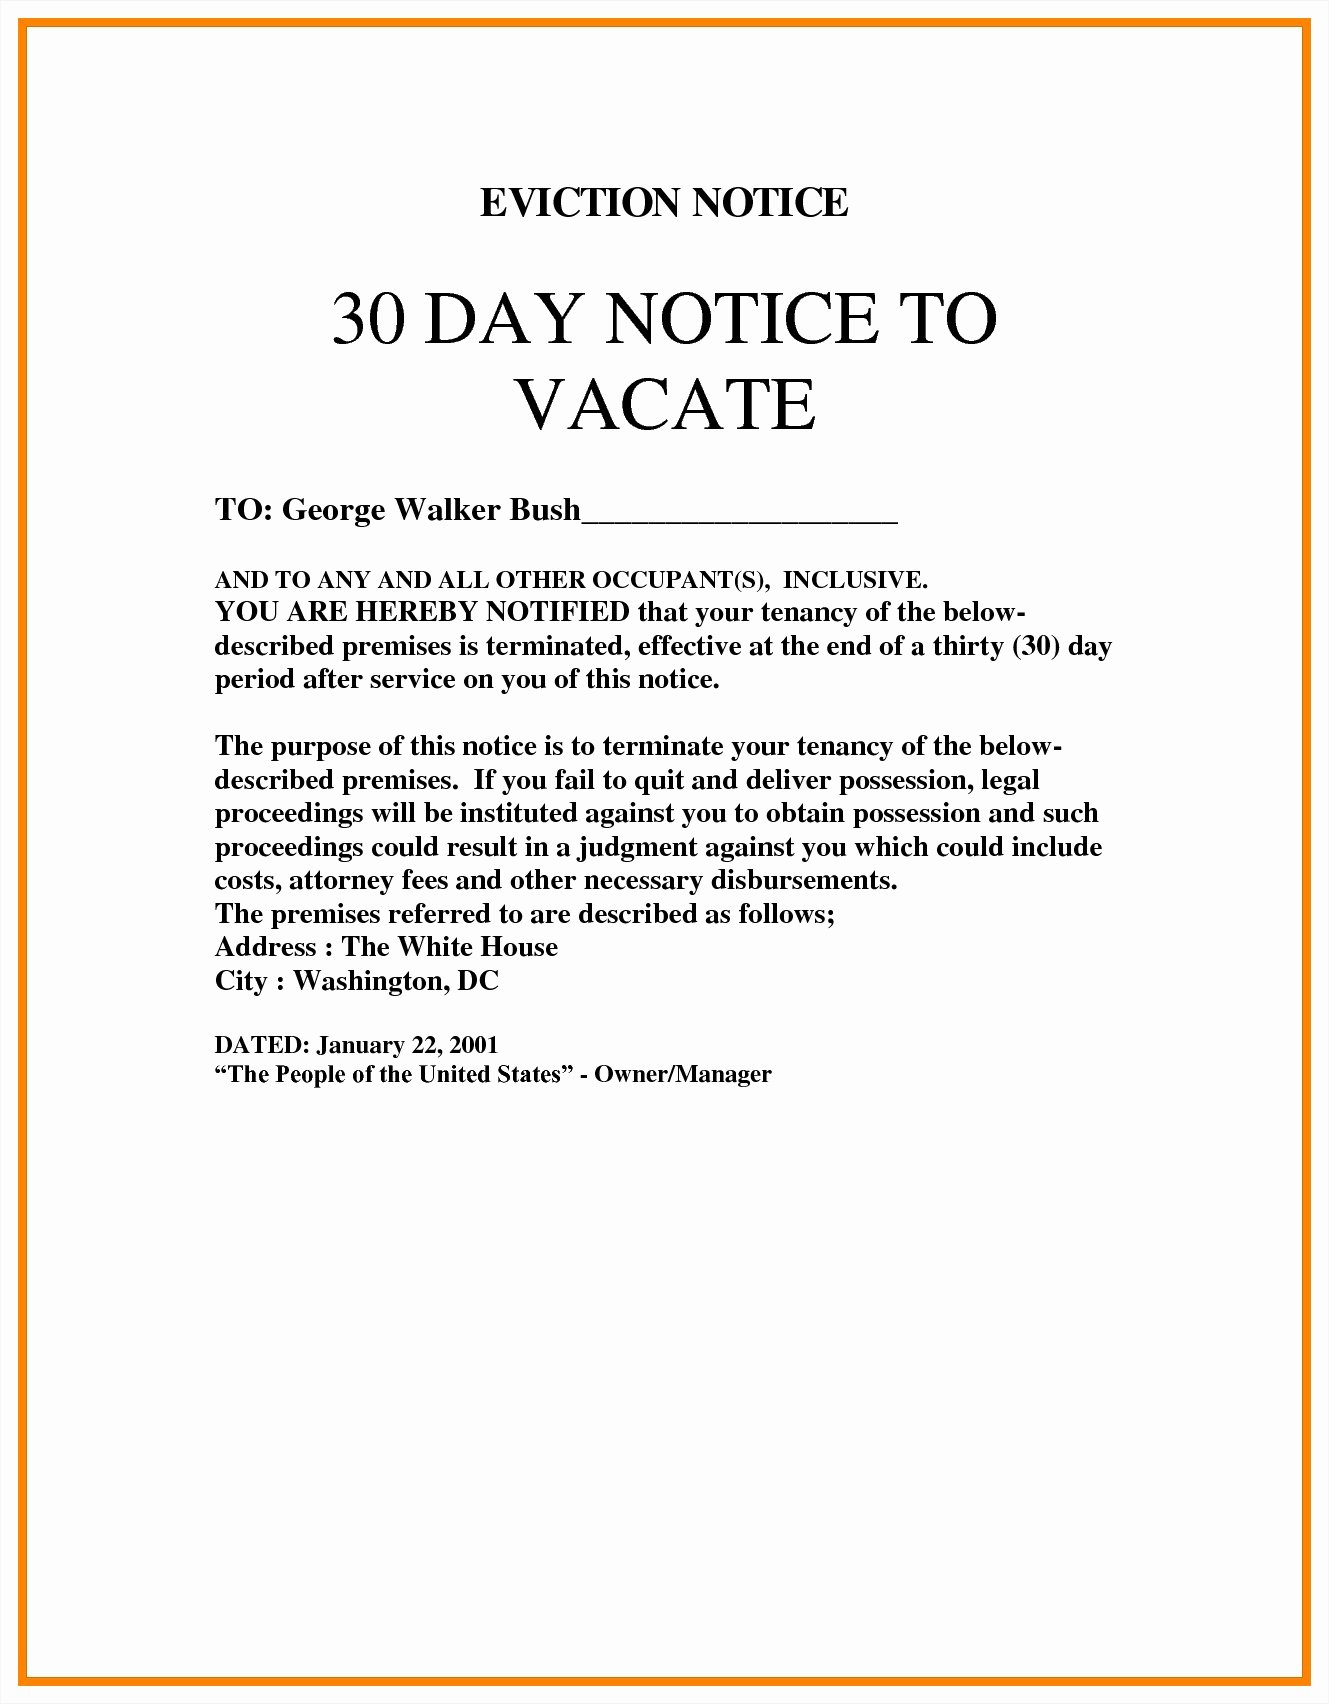 Eviction Notice Template California Unique Blank Eviction Notice Mughals